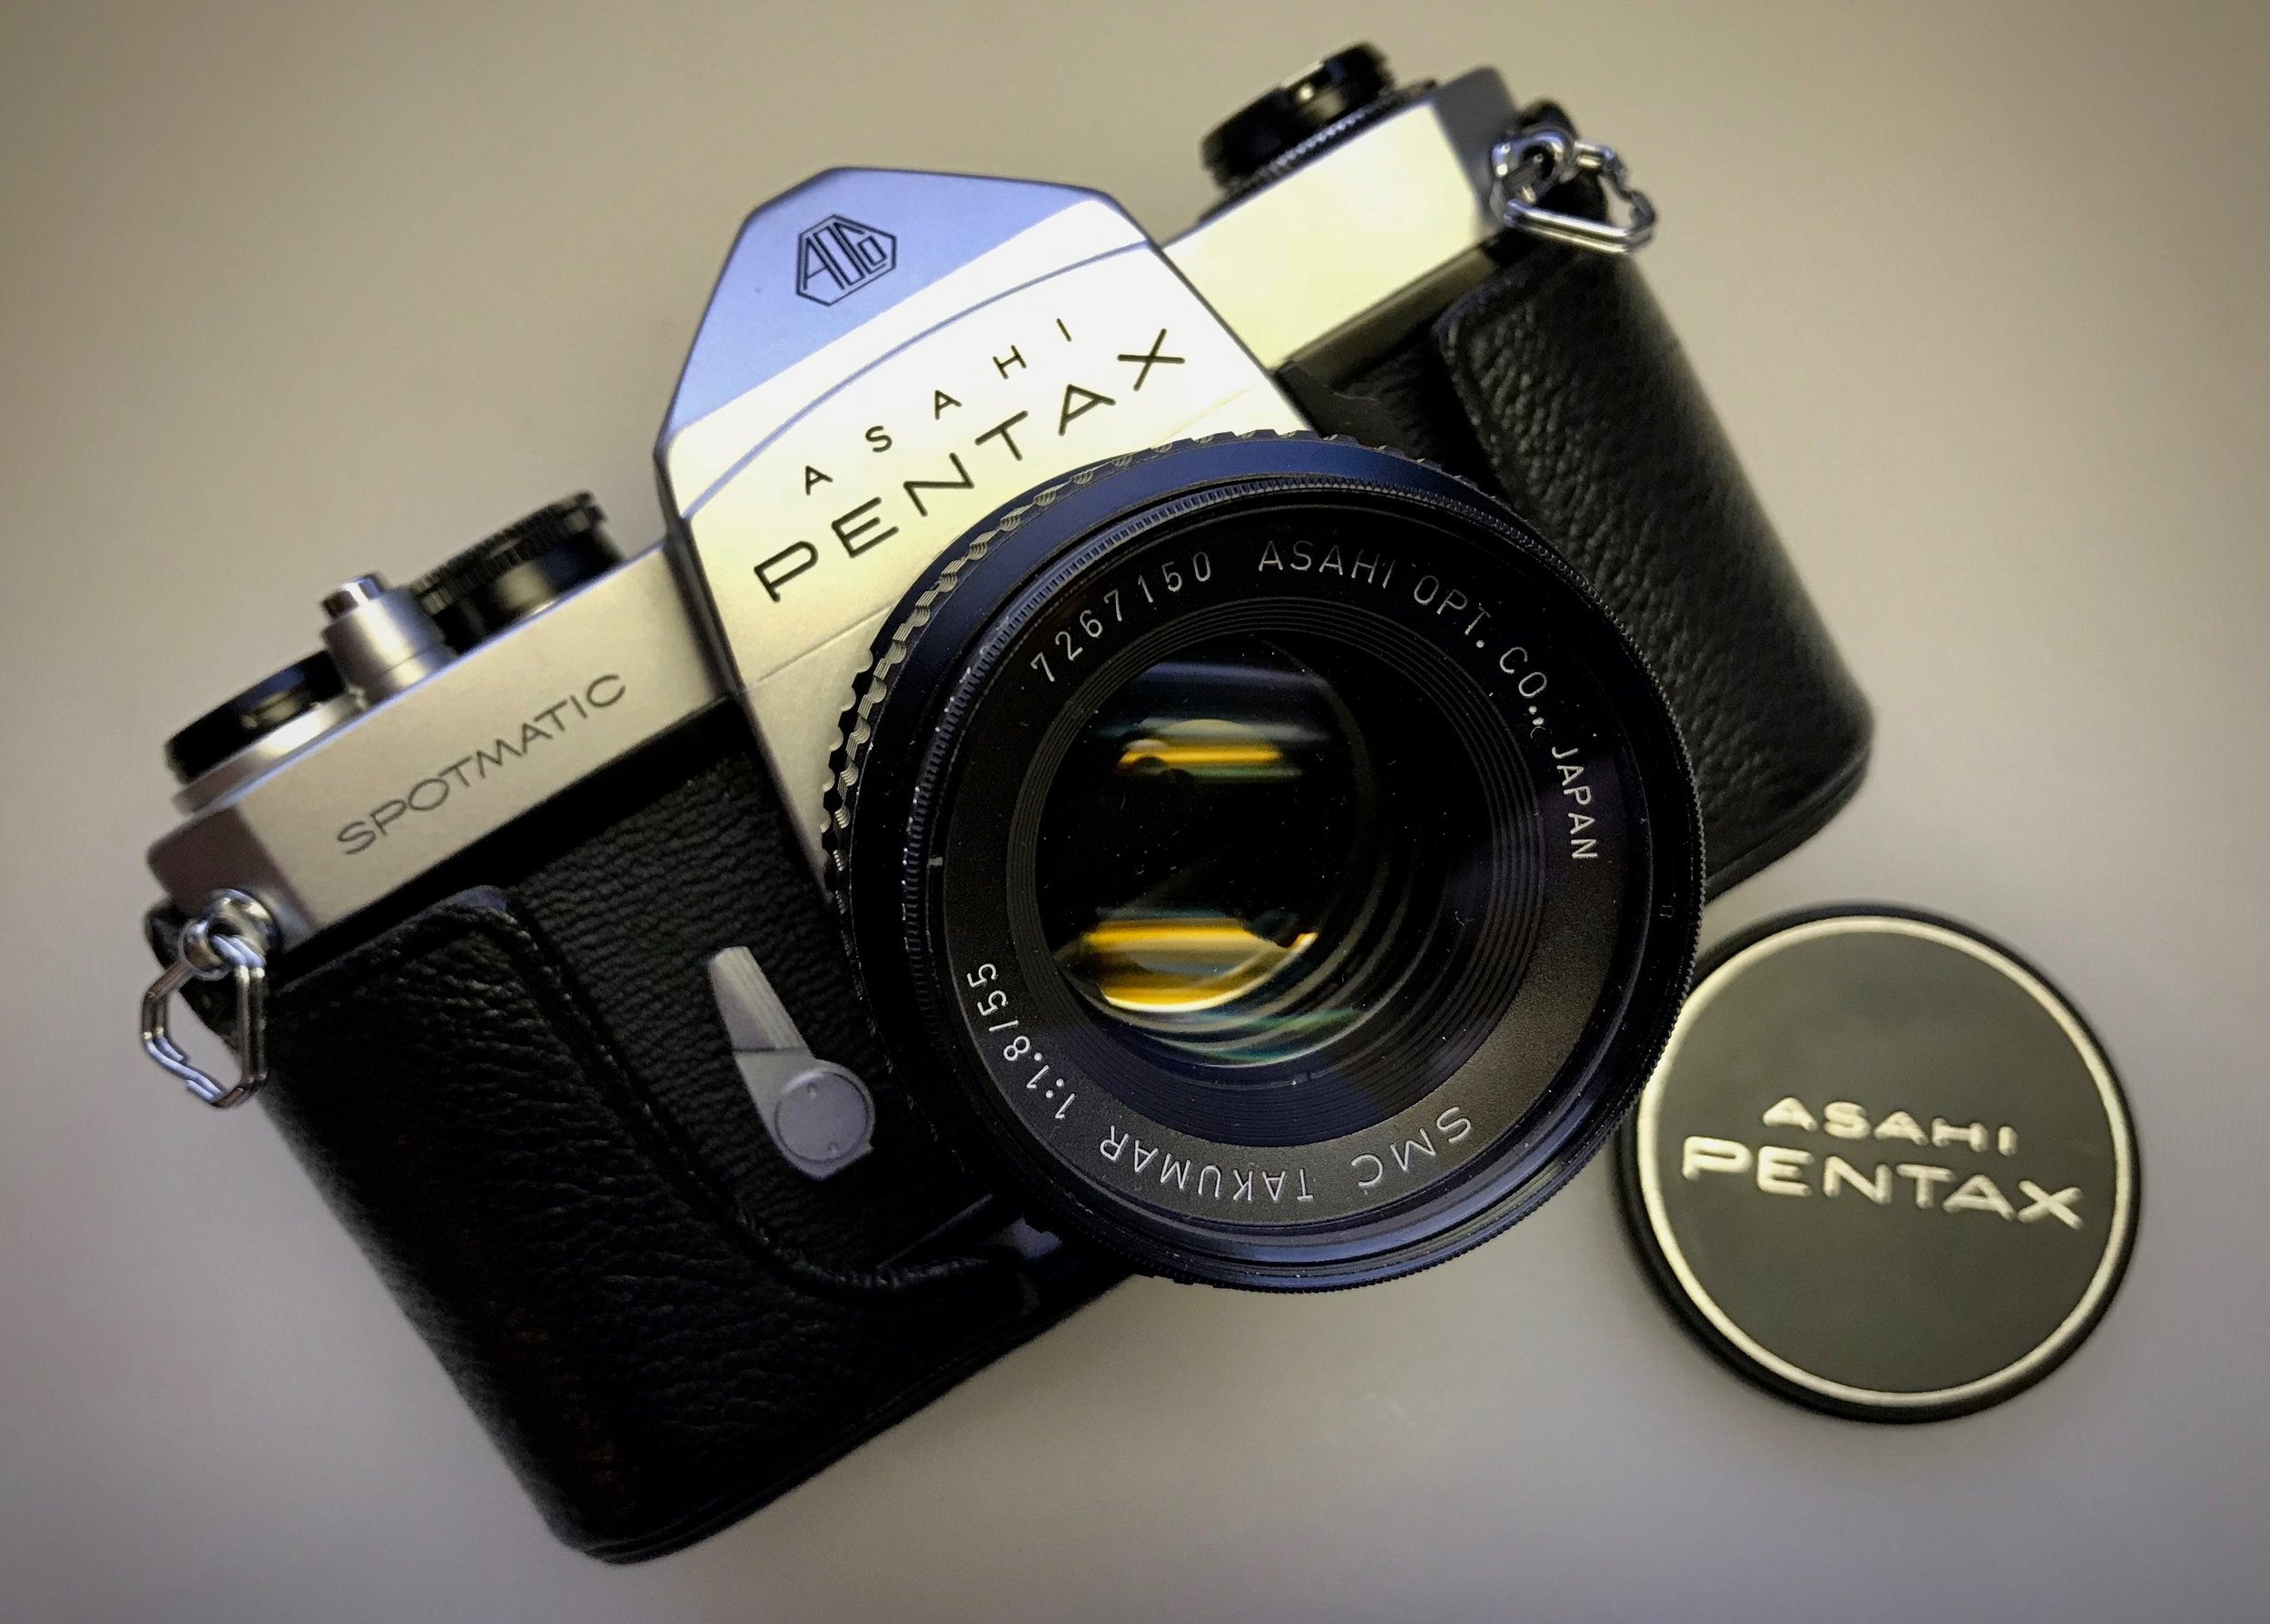 My Pentax SP: A Flickr Star!